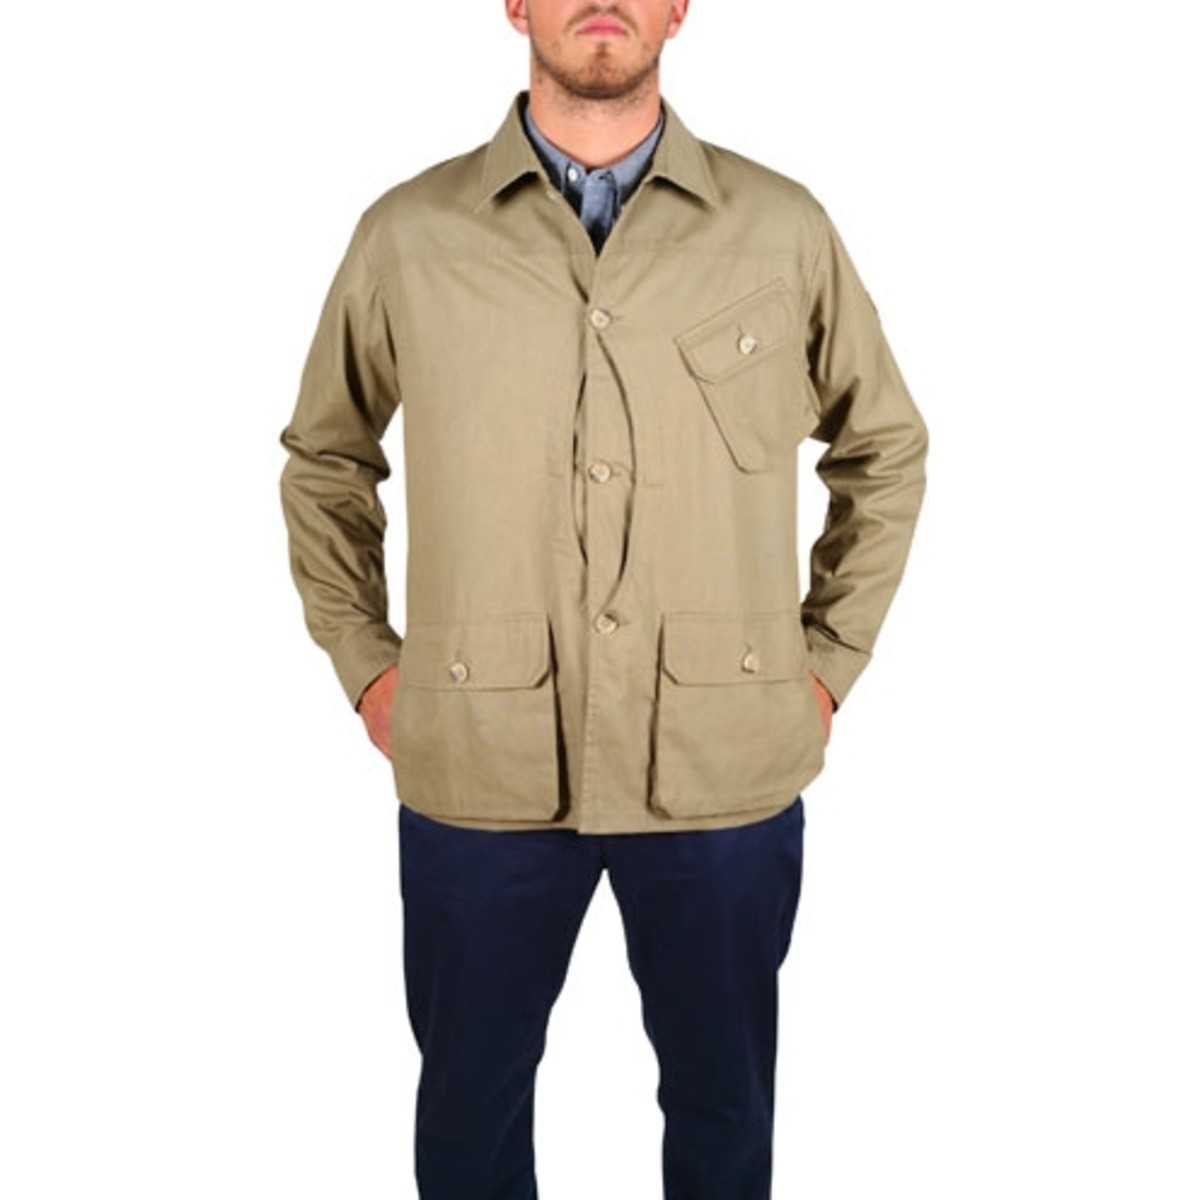 Penfield SS2011 Jackets 46